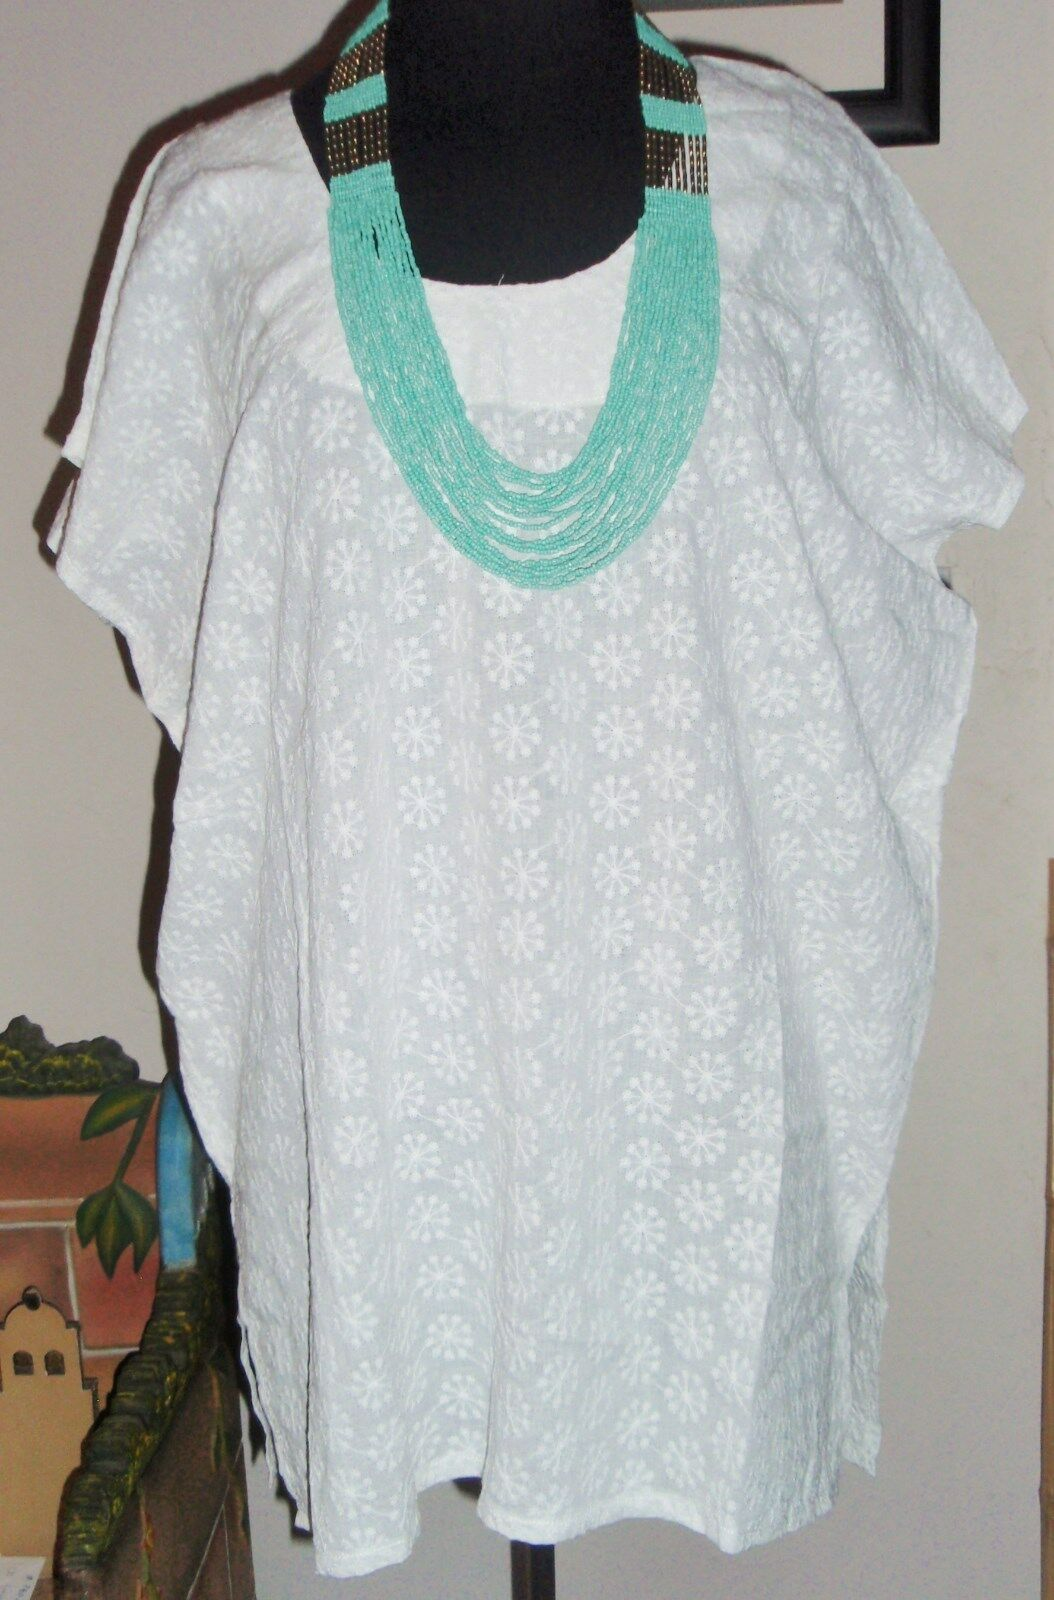 YUCATEC MEXICAN EMBROIDERED TUNIC HUIPIL MANTA BOHO 100 % IRELAND COTTON GENUINE